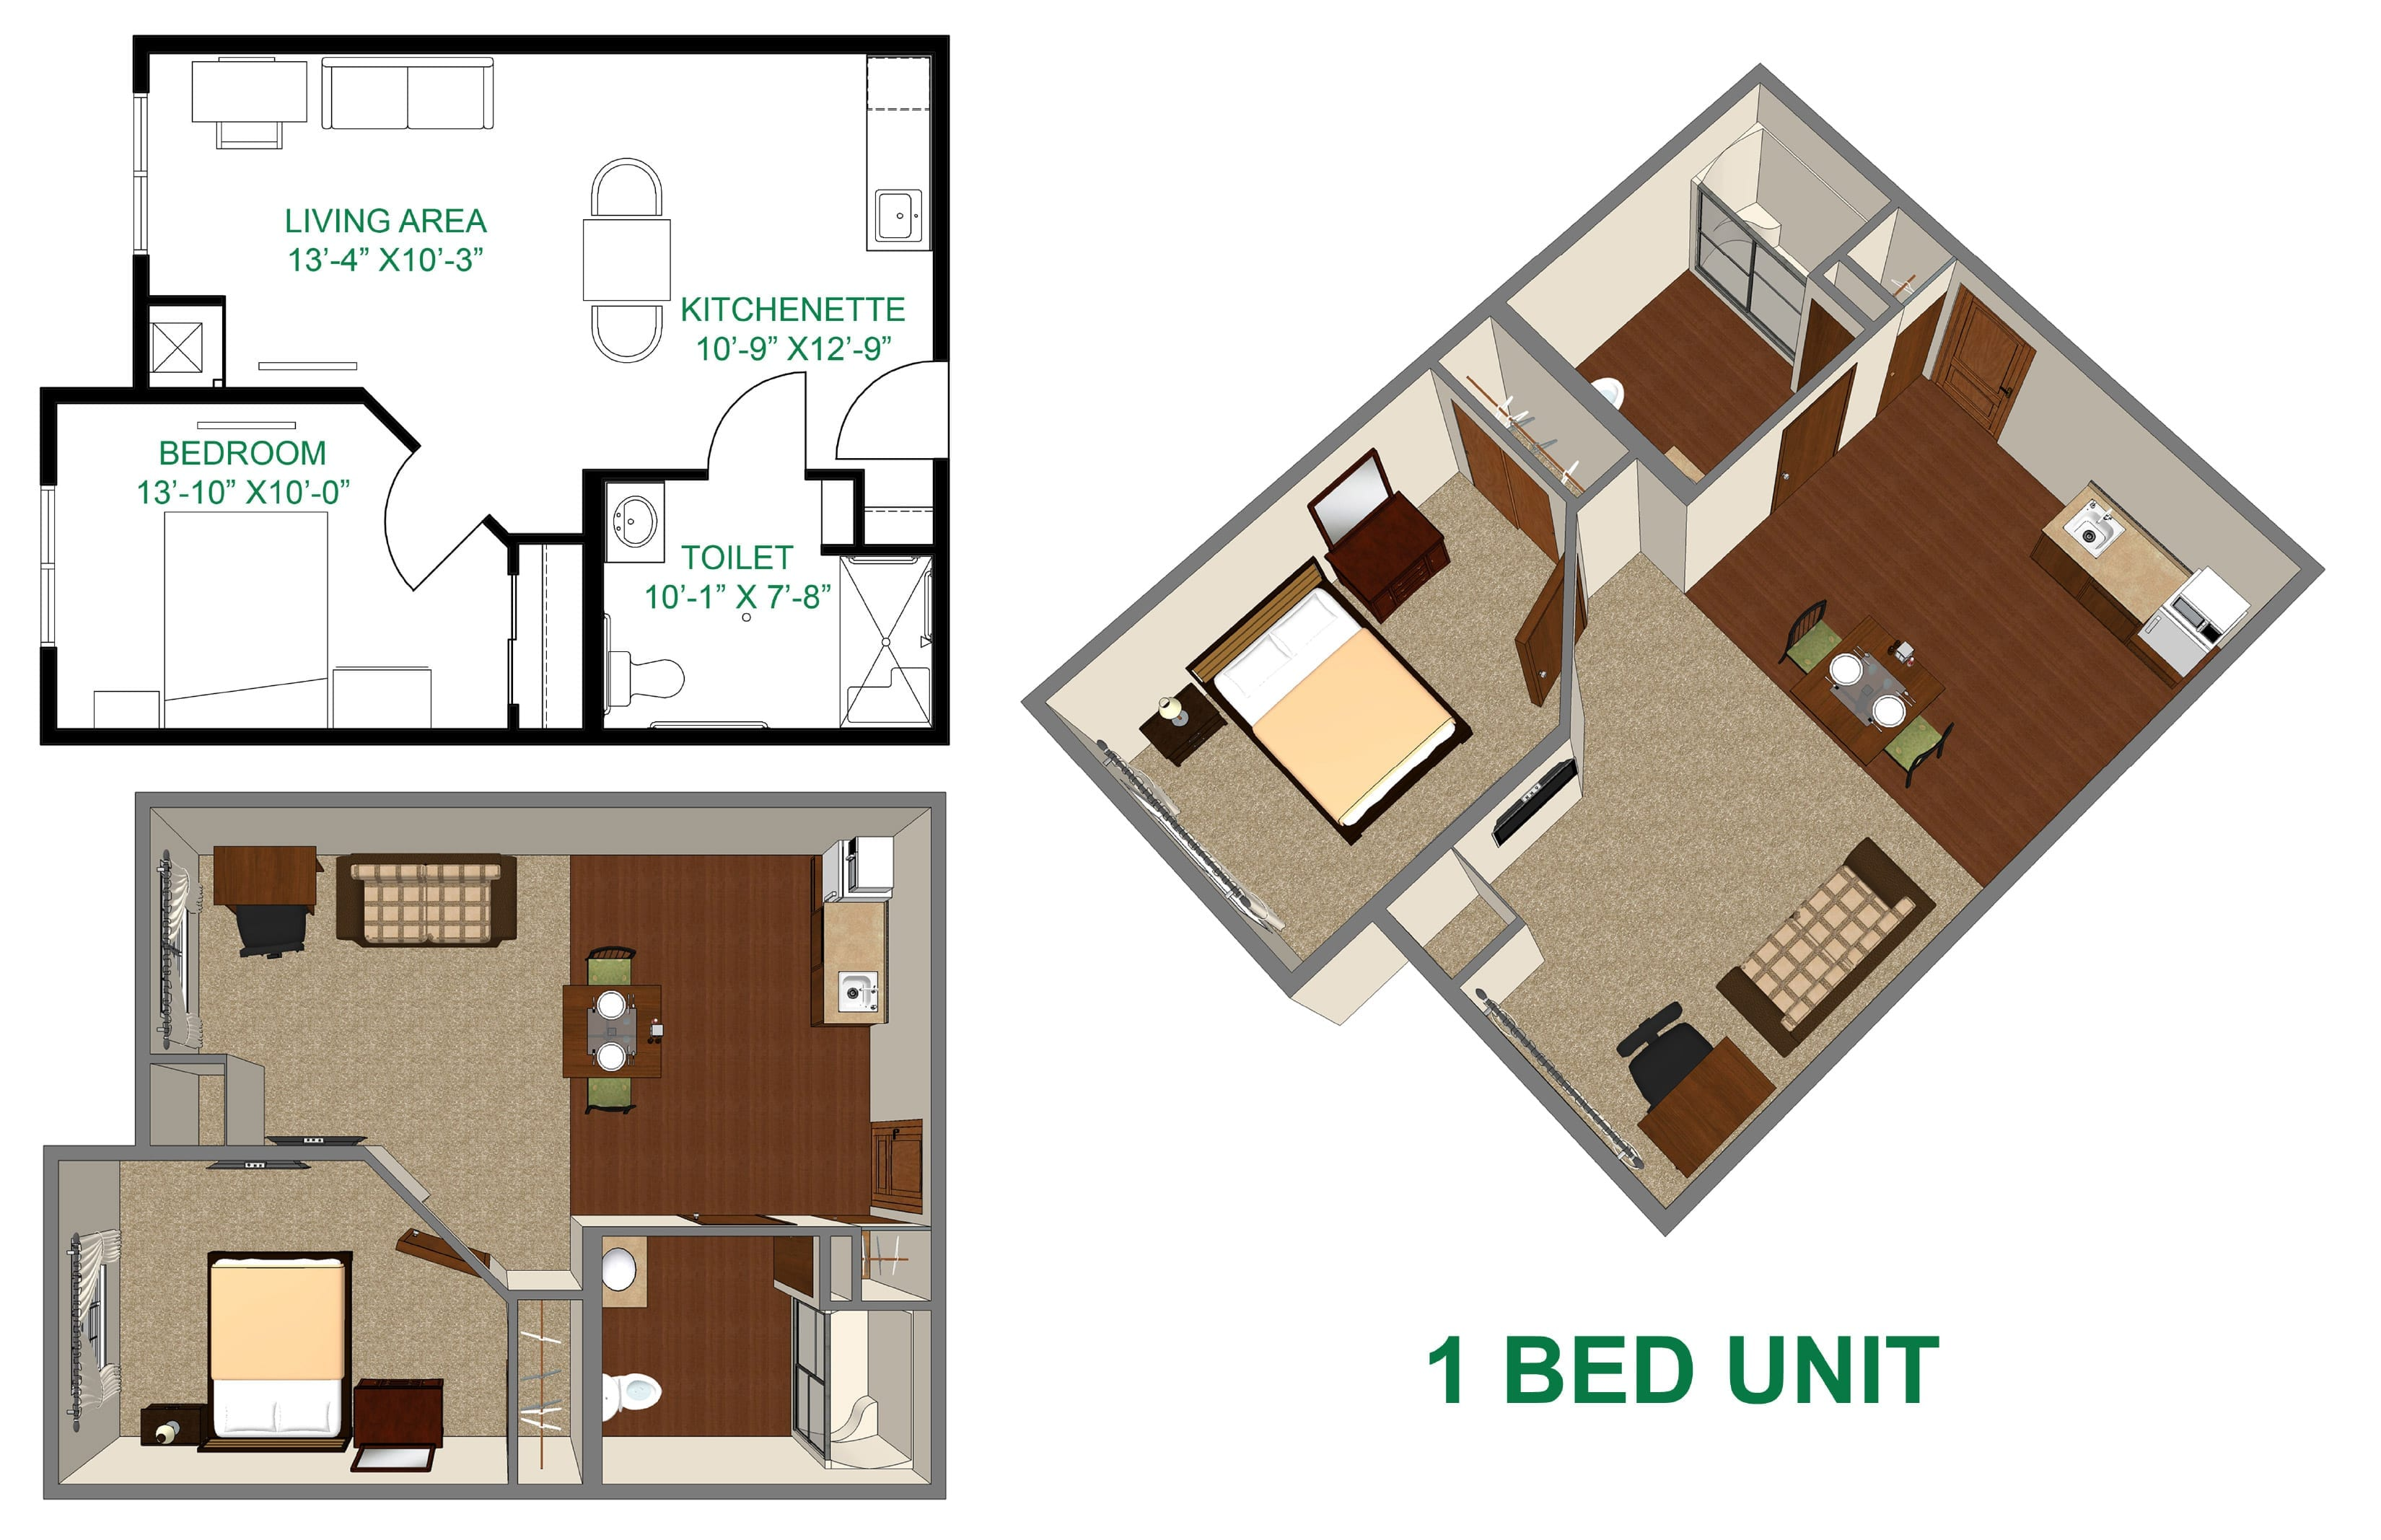 assisted living bedroom 1 layout